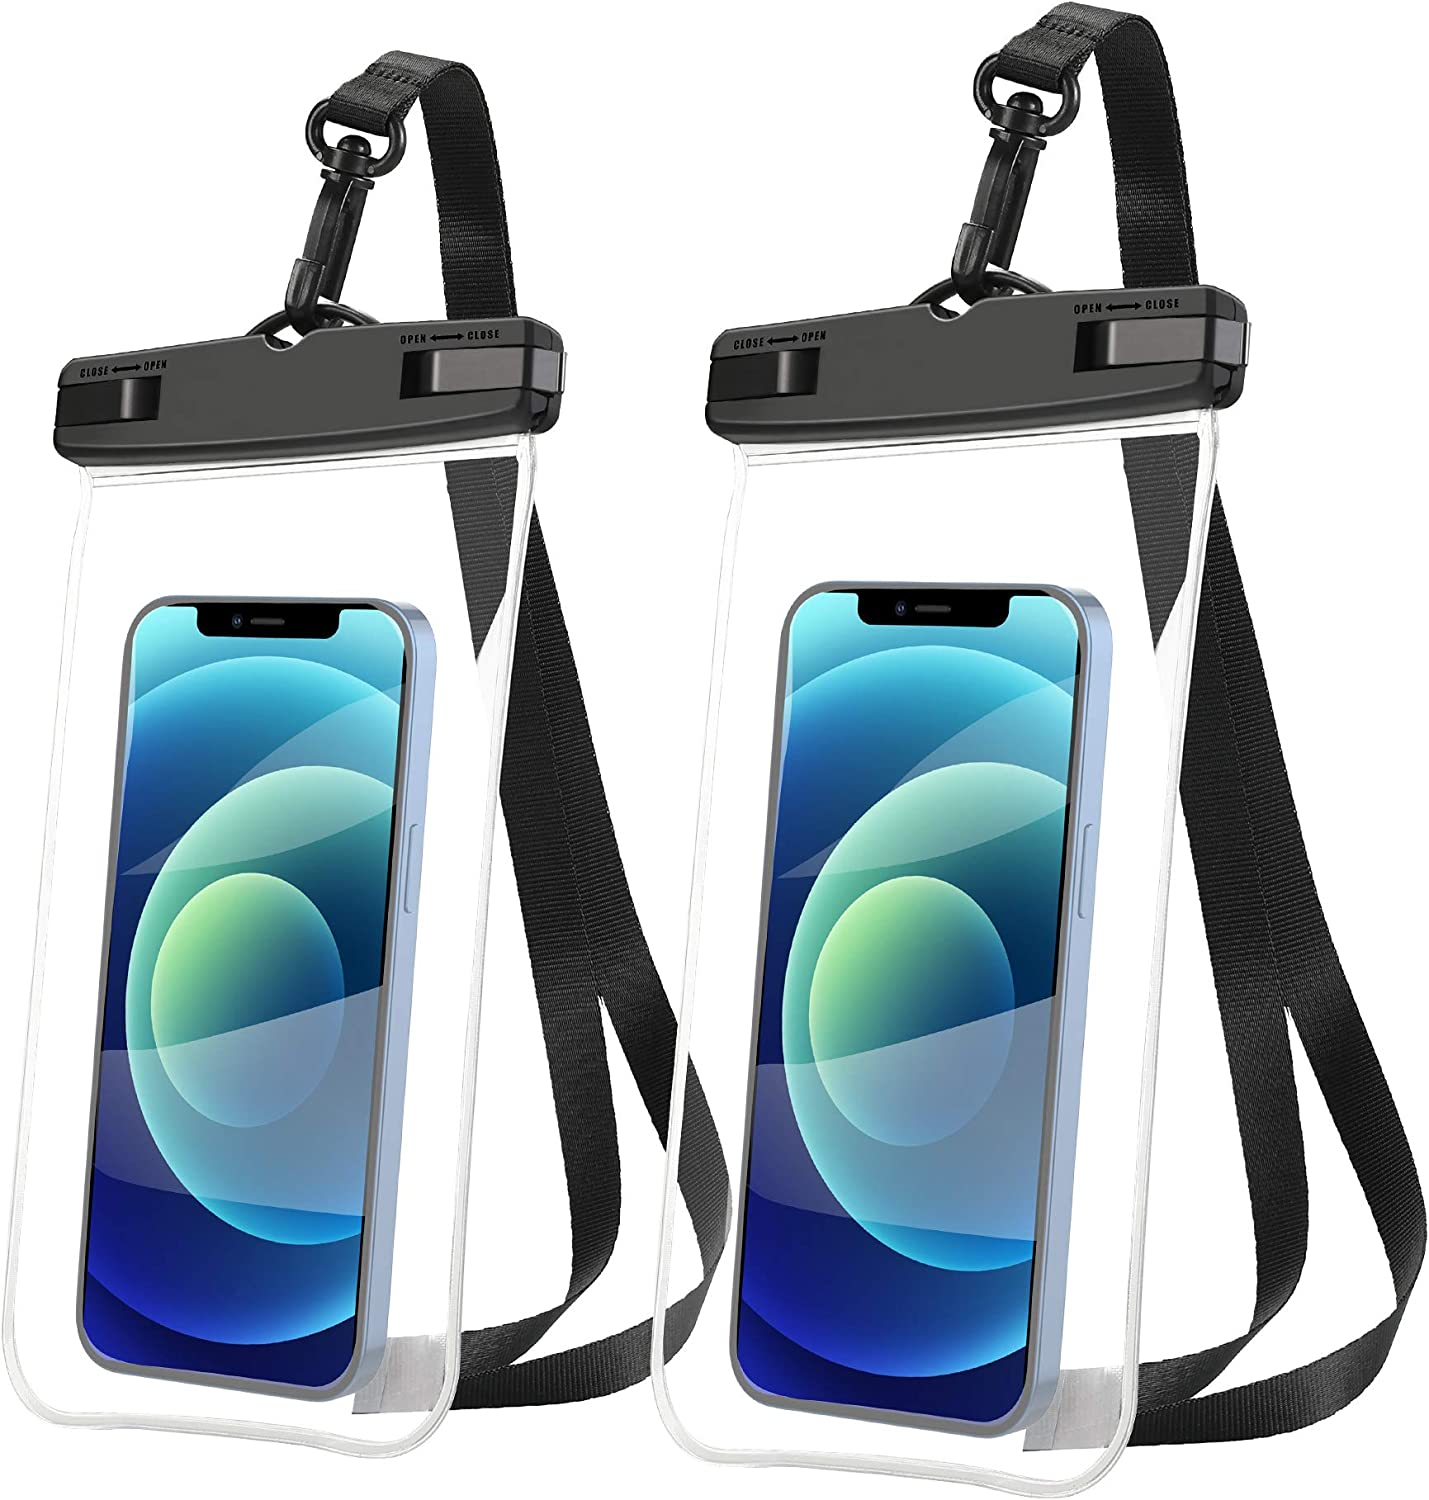 AINOYA Universal Waterproof Case 2 Pack, IPX8 Waterproof Phone Pouch Compatible with iPhone 12 Pro Max/Galaxy s21 Ultra/Pixel 5a /oneplus 9 pro up to 7